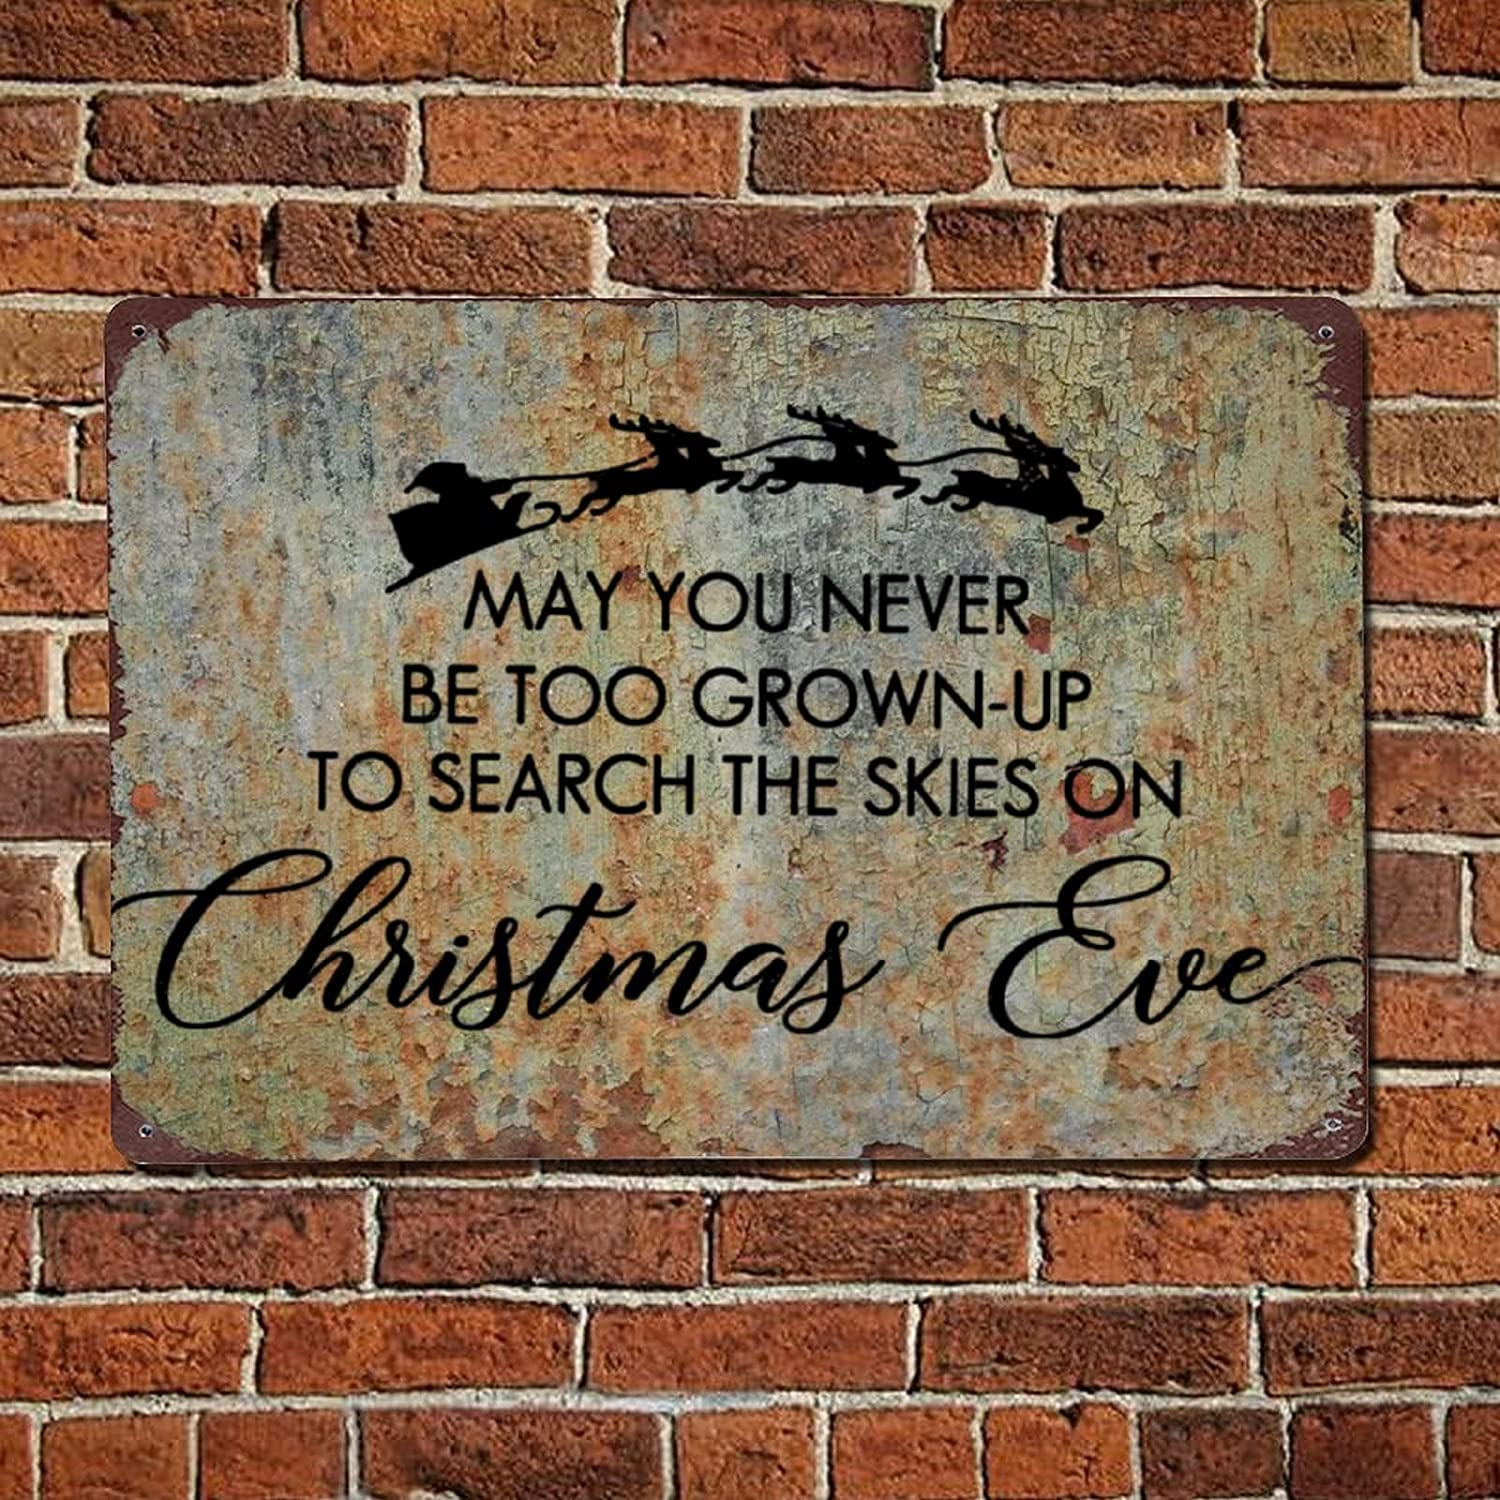 May You Never Be Too Grown Up to Search The Skies on Christmas Eve Vintage Quotes Metal sign,Retro quote saying words Bar Men Cave Garden Wall art,Rustic Farmhouse Aluminum Sign,home decor